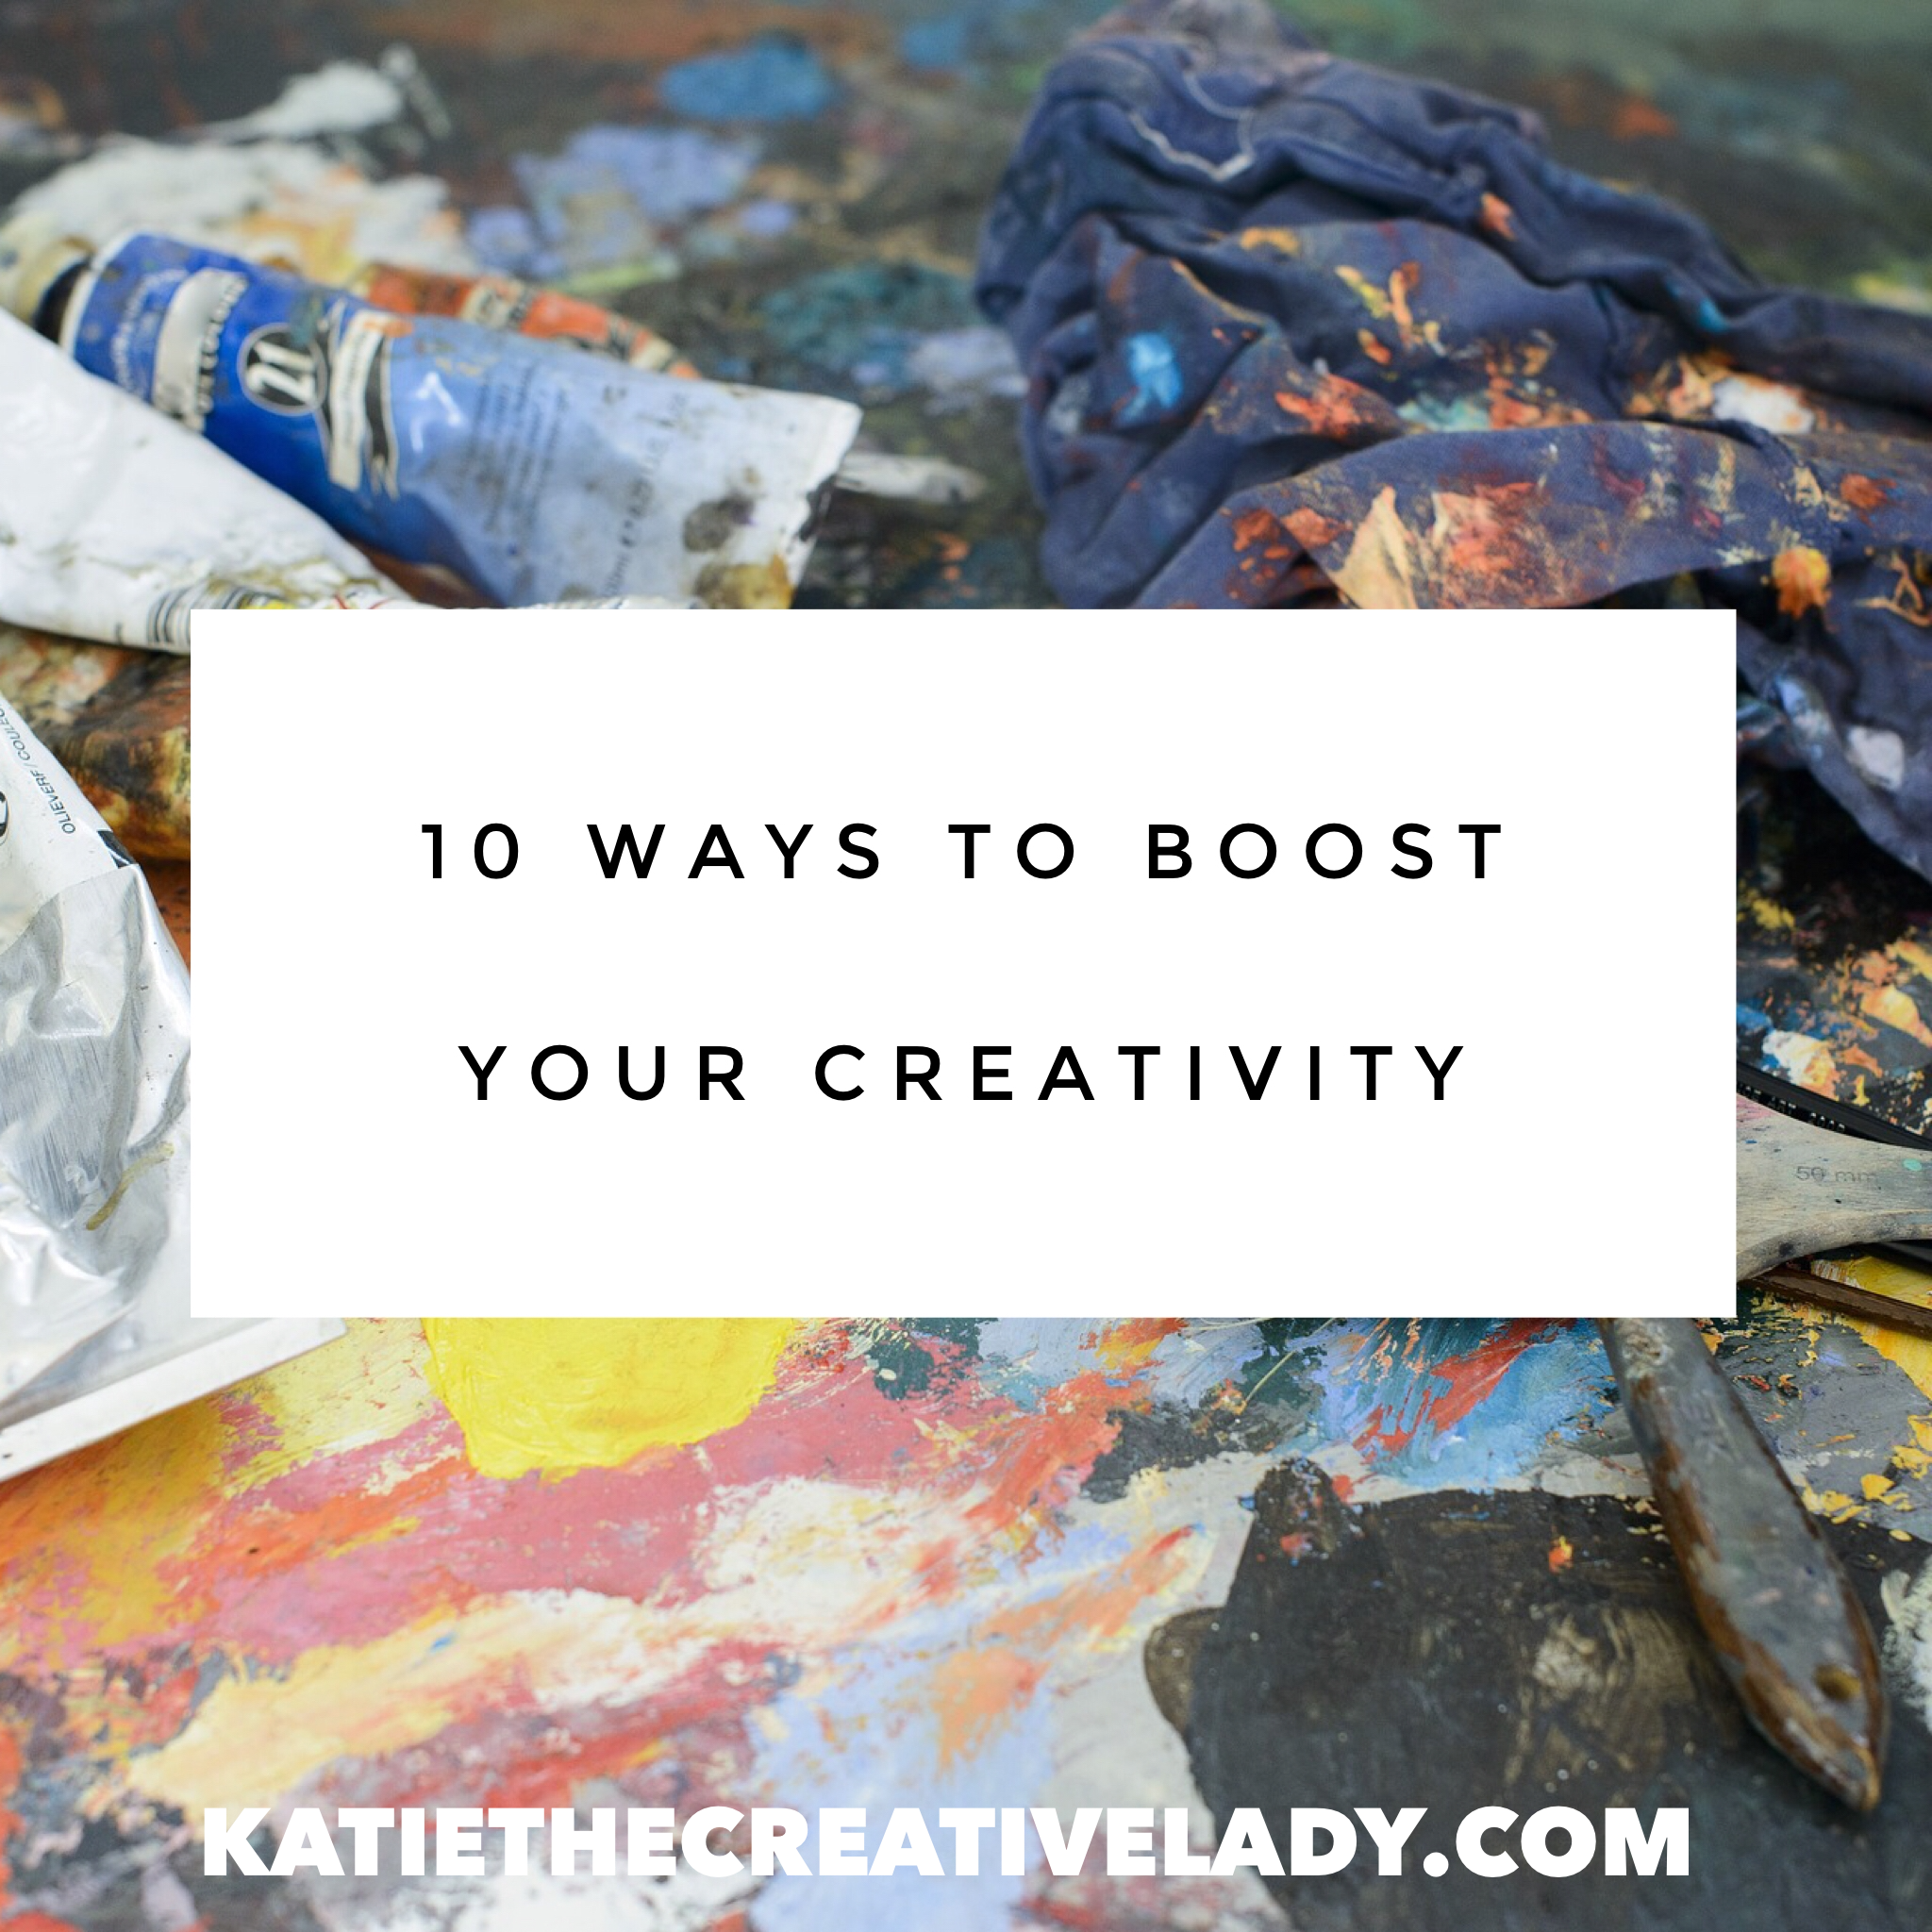 10 ways to boost creativity.PNG